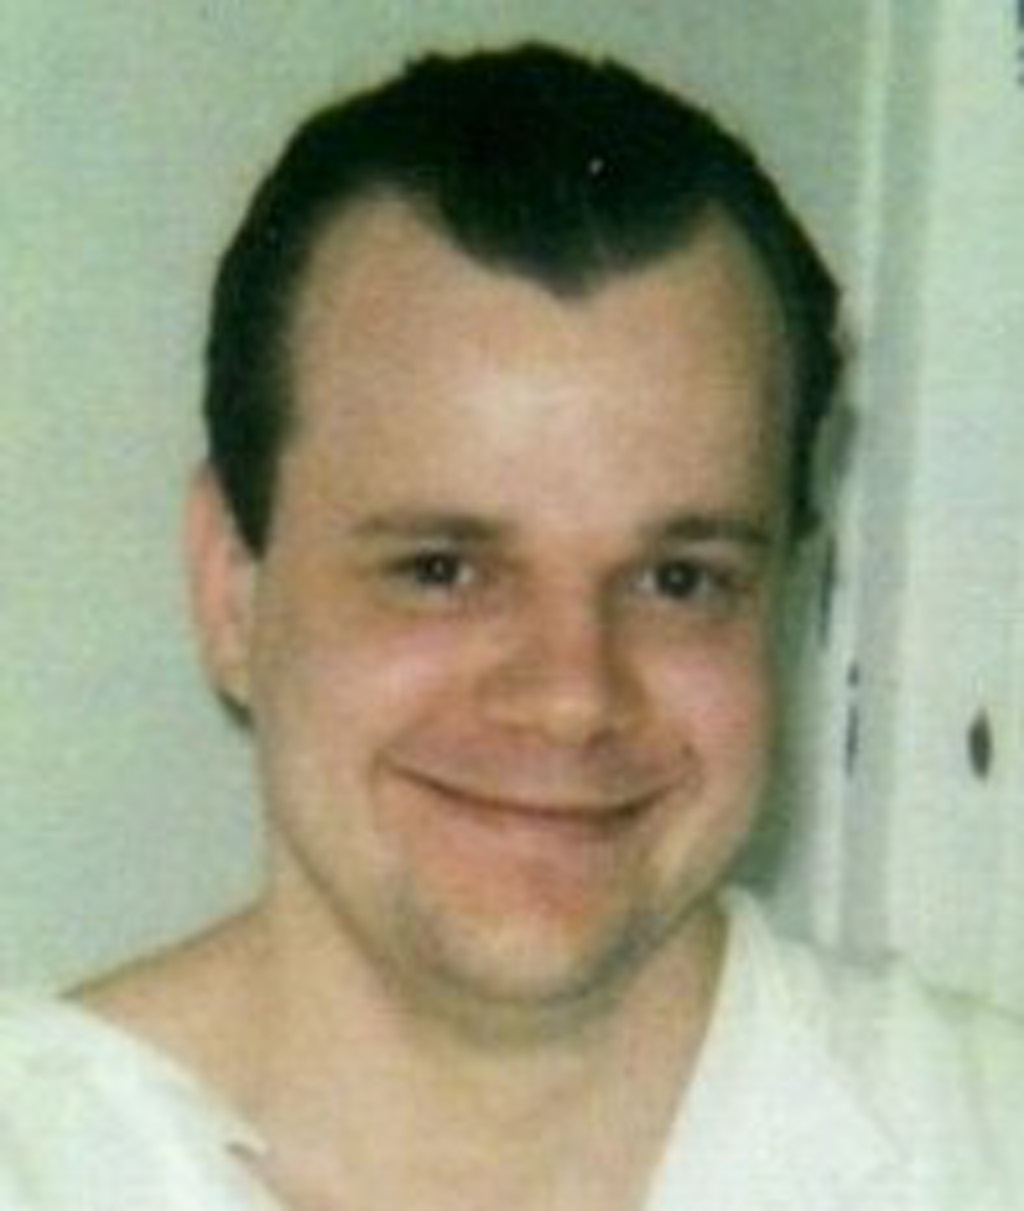 Texas Court of Criminal Appeals Upholds Death Sentence Based on False Psychiatric Testimony